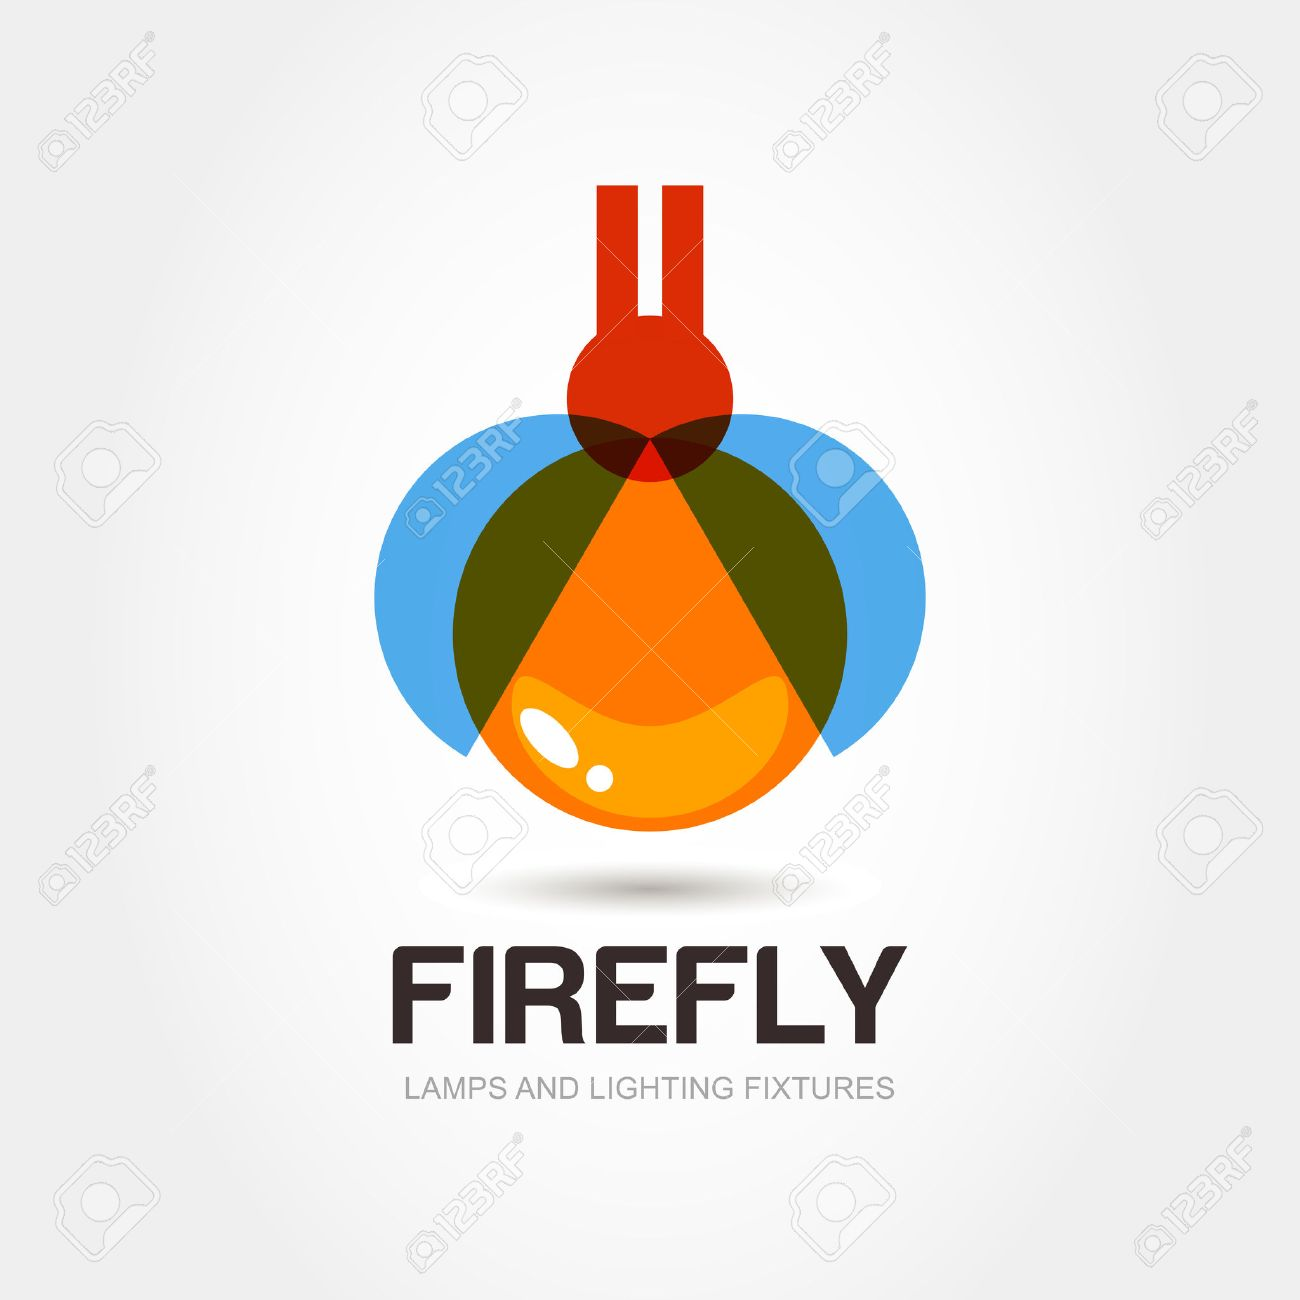 firefly vector stock photos royalty free firefly vector images